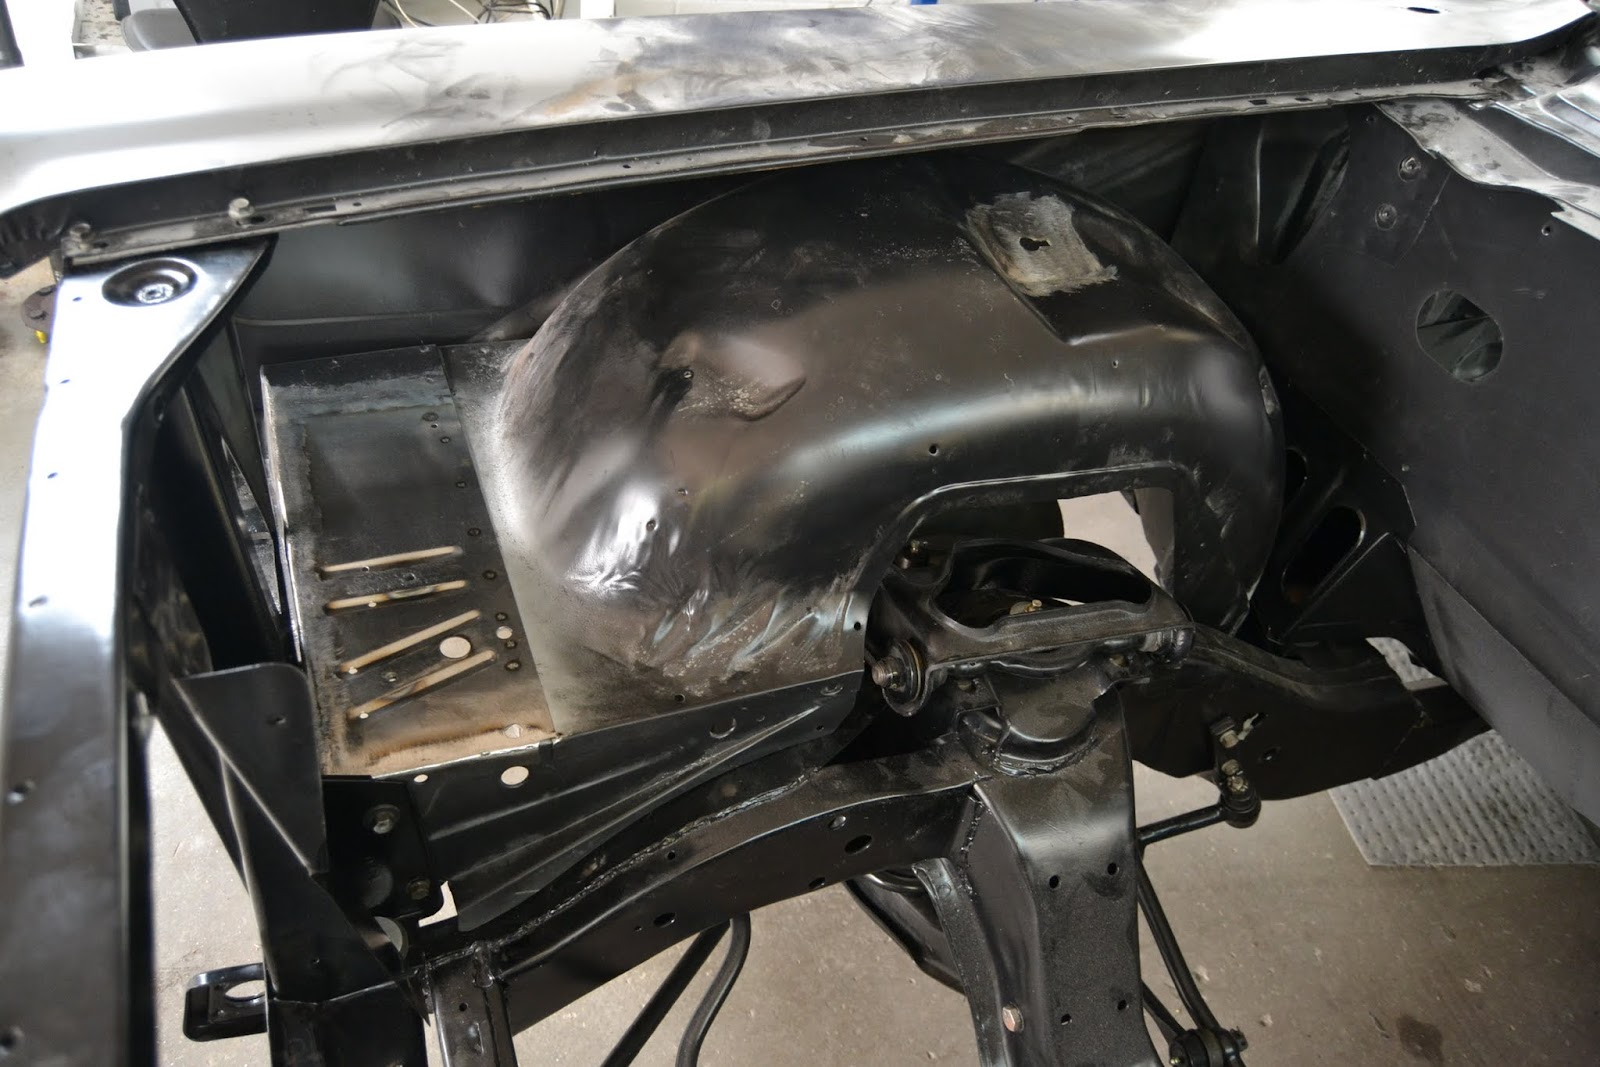 Pollard Used Cars >> 1966 Ford Galaxie 500 7-Litre Restoration Thread - Page 4 - Our Cars & Restoration Projects ...